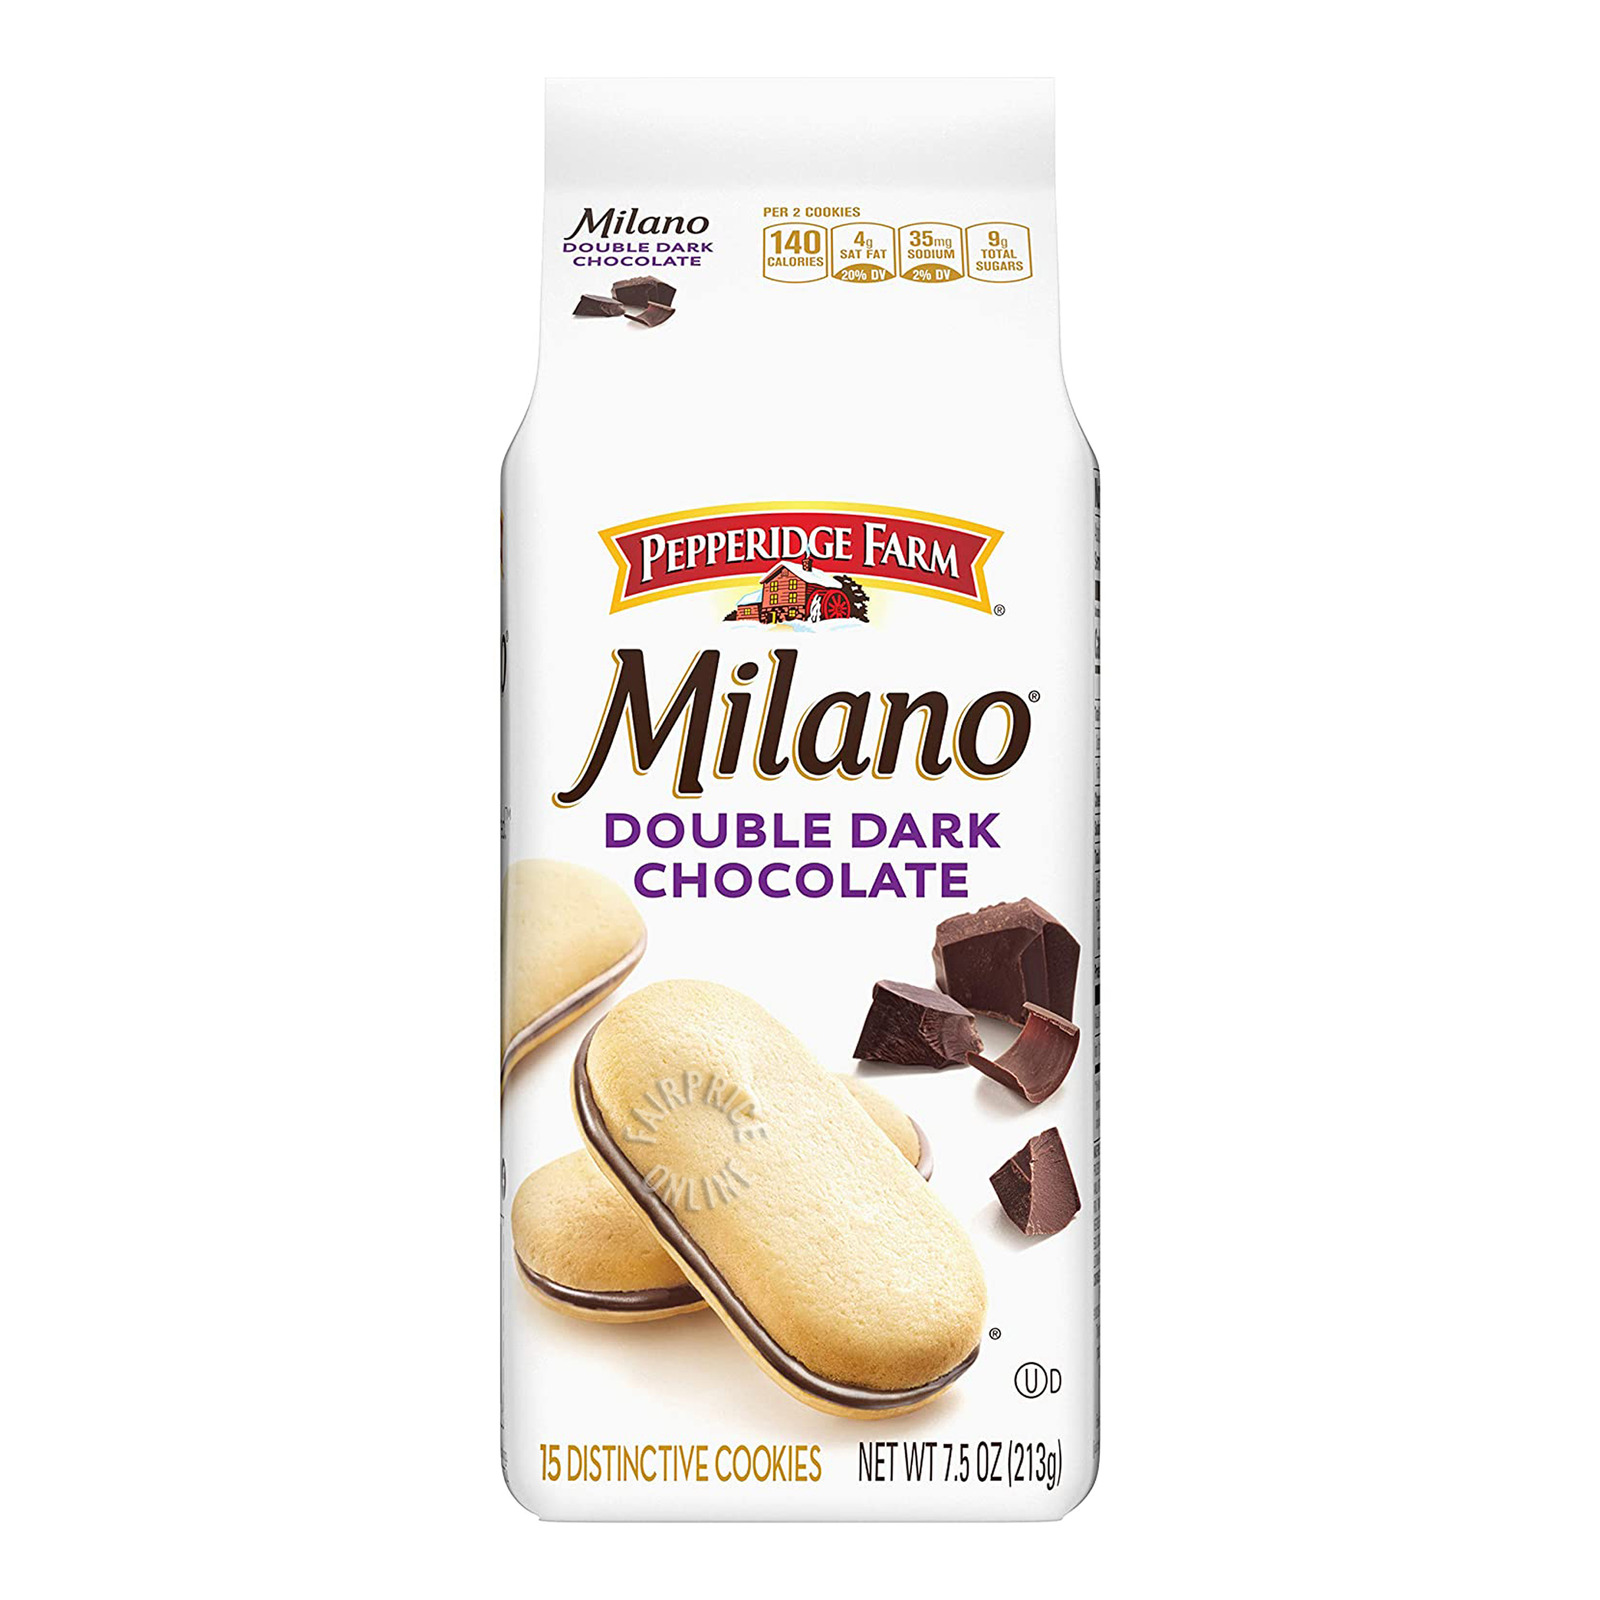 PEPPERIDGE FARM Milano Cookies - Mint Chocolate 198g